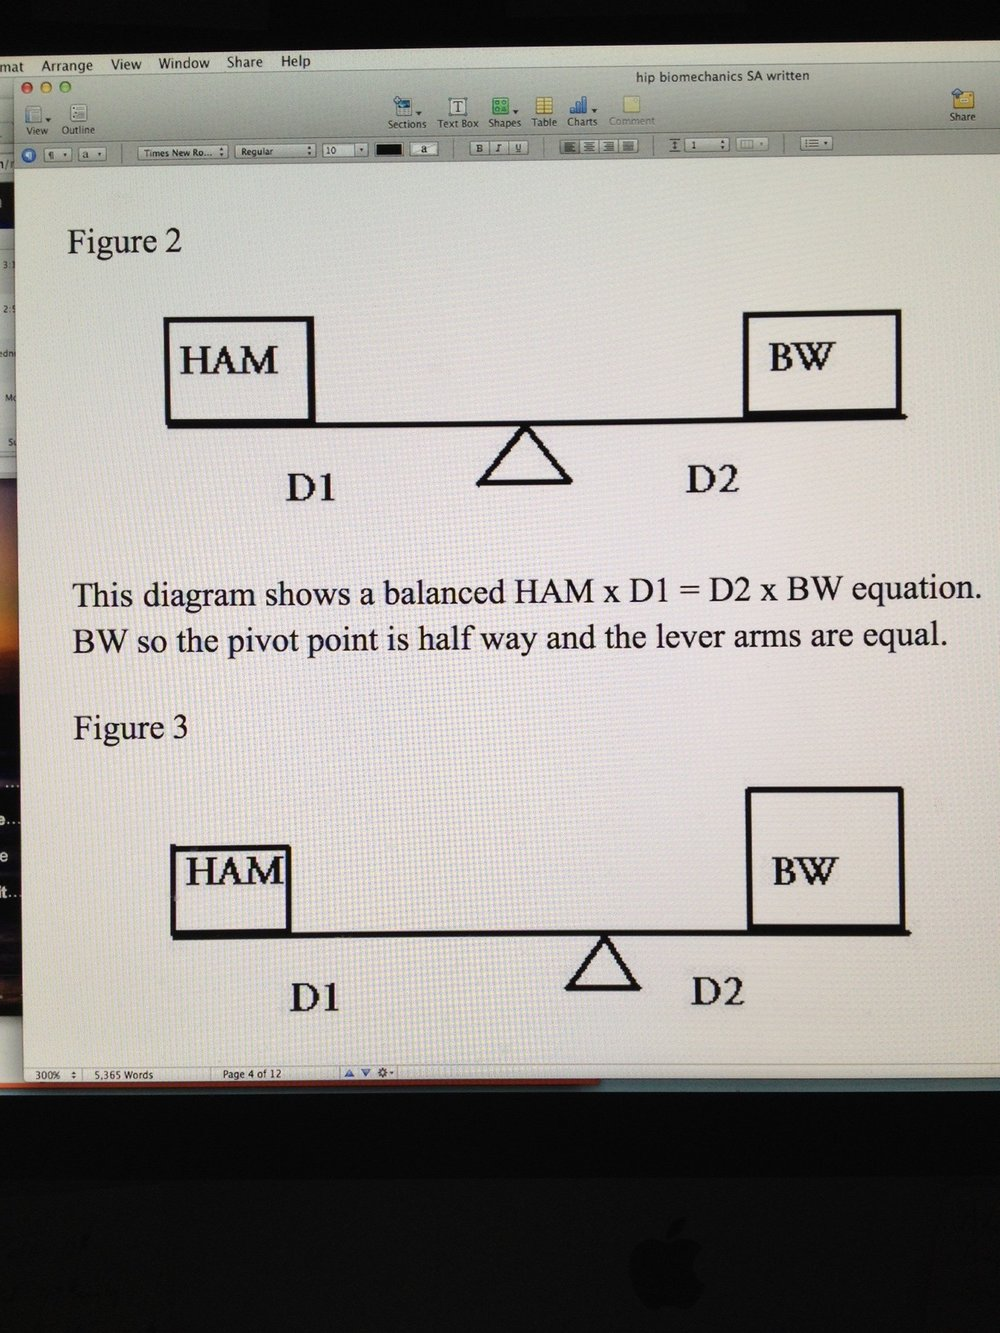 Hip Biomechanics: Frontal Plane Part 3 This diagram (Figure 3)  also shows a balanced HAM x D1 = D2 x BW equation.  The BW is larger than the HAM but this is offset in the rules of the teeter-totter.  Shifting the pivot point towards the larger mass is offset by the smaller D2 and larger D1 moment arms.  This is a typical compensatory mechanism used by obese patients to ambulate effectively.  It does render significant frontal plane movement of the pelvis instead of the more desirable silent frontal plane pelvis.  In this compensation, even large body weights can be somewhat offset by the degree of contralateral hip hiking to reduce the D2 moment arm and increase the D1 moment arm however this compensation has its limits.  When the limits of alteration of moment arm length are reached the body's only compensation at that point is to increase the HAM forces which increases joint compression and thus cartilage wear since the cyclical loading and unloading of the cartilage is much less.  This is also the same mechanism used by patients with a osteoarthritic painful hip joint.  We are not referring to increasing BW, rather we are suggesting that to reduce pain the patient will want less joint compression and thus a reduced HAM.  To do this we want to increase the D1 moment arm. The only way other than surgery to achieve this increase in D1 is to take the existing body weight and shift it closer to the pivot point. Ideally you would want to lean so far over the affected painful hip as to get your body weight (BW) immediately over the pivot point. This is what is done with a walking cane in the opposite hand of the stance leg, to help lift the swing phase leg and pelvis and to push the body mass over the hip WITHOUT using more HAM (glute medius contraction generated compression, which would generate pain). This would effectively reduce D2 to nil and significantly increase D1 thus allowing HAM to be minimal; thus reducing painful joint compression.  (In teeter-totter verbiage, put the small child on the long part of the teeter-totter arm and you can move large forces with little effort at the pivot point.)